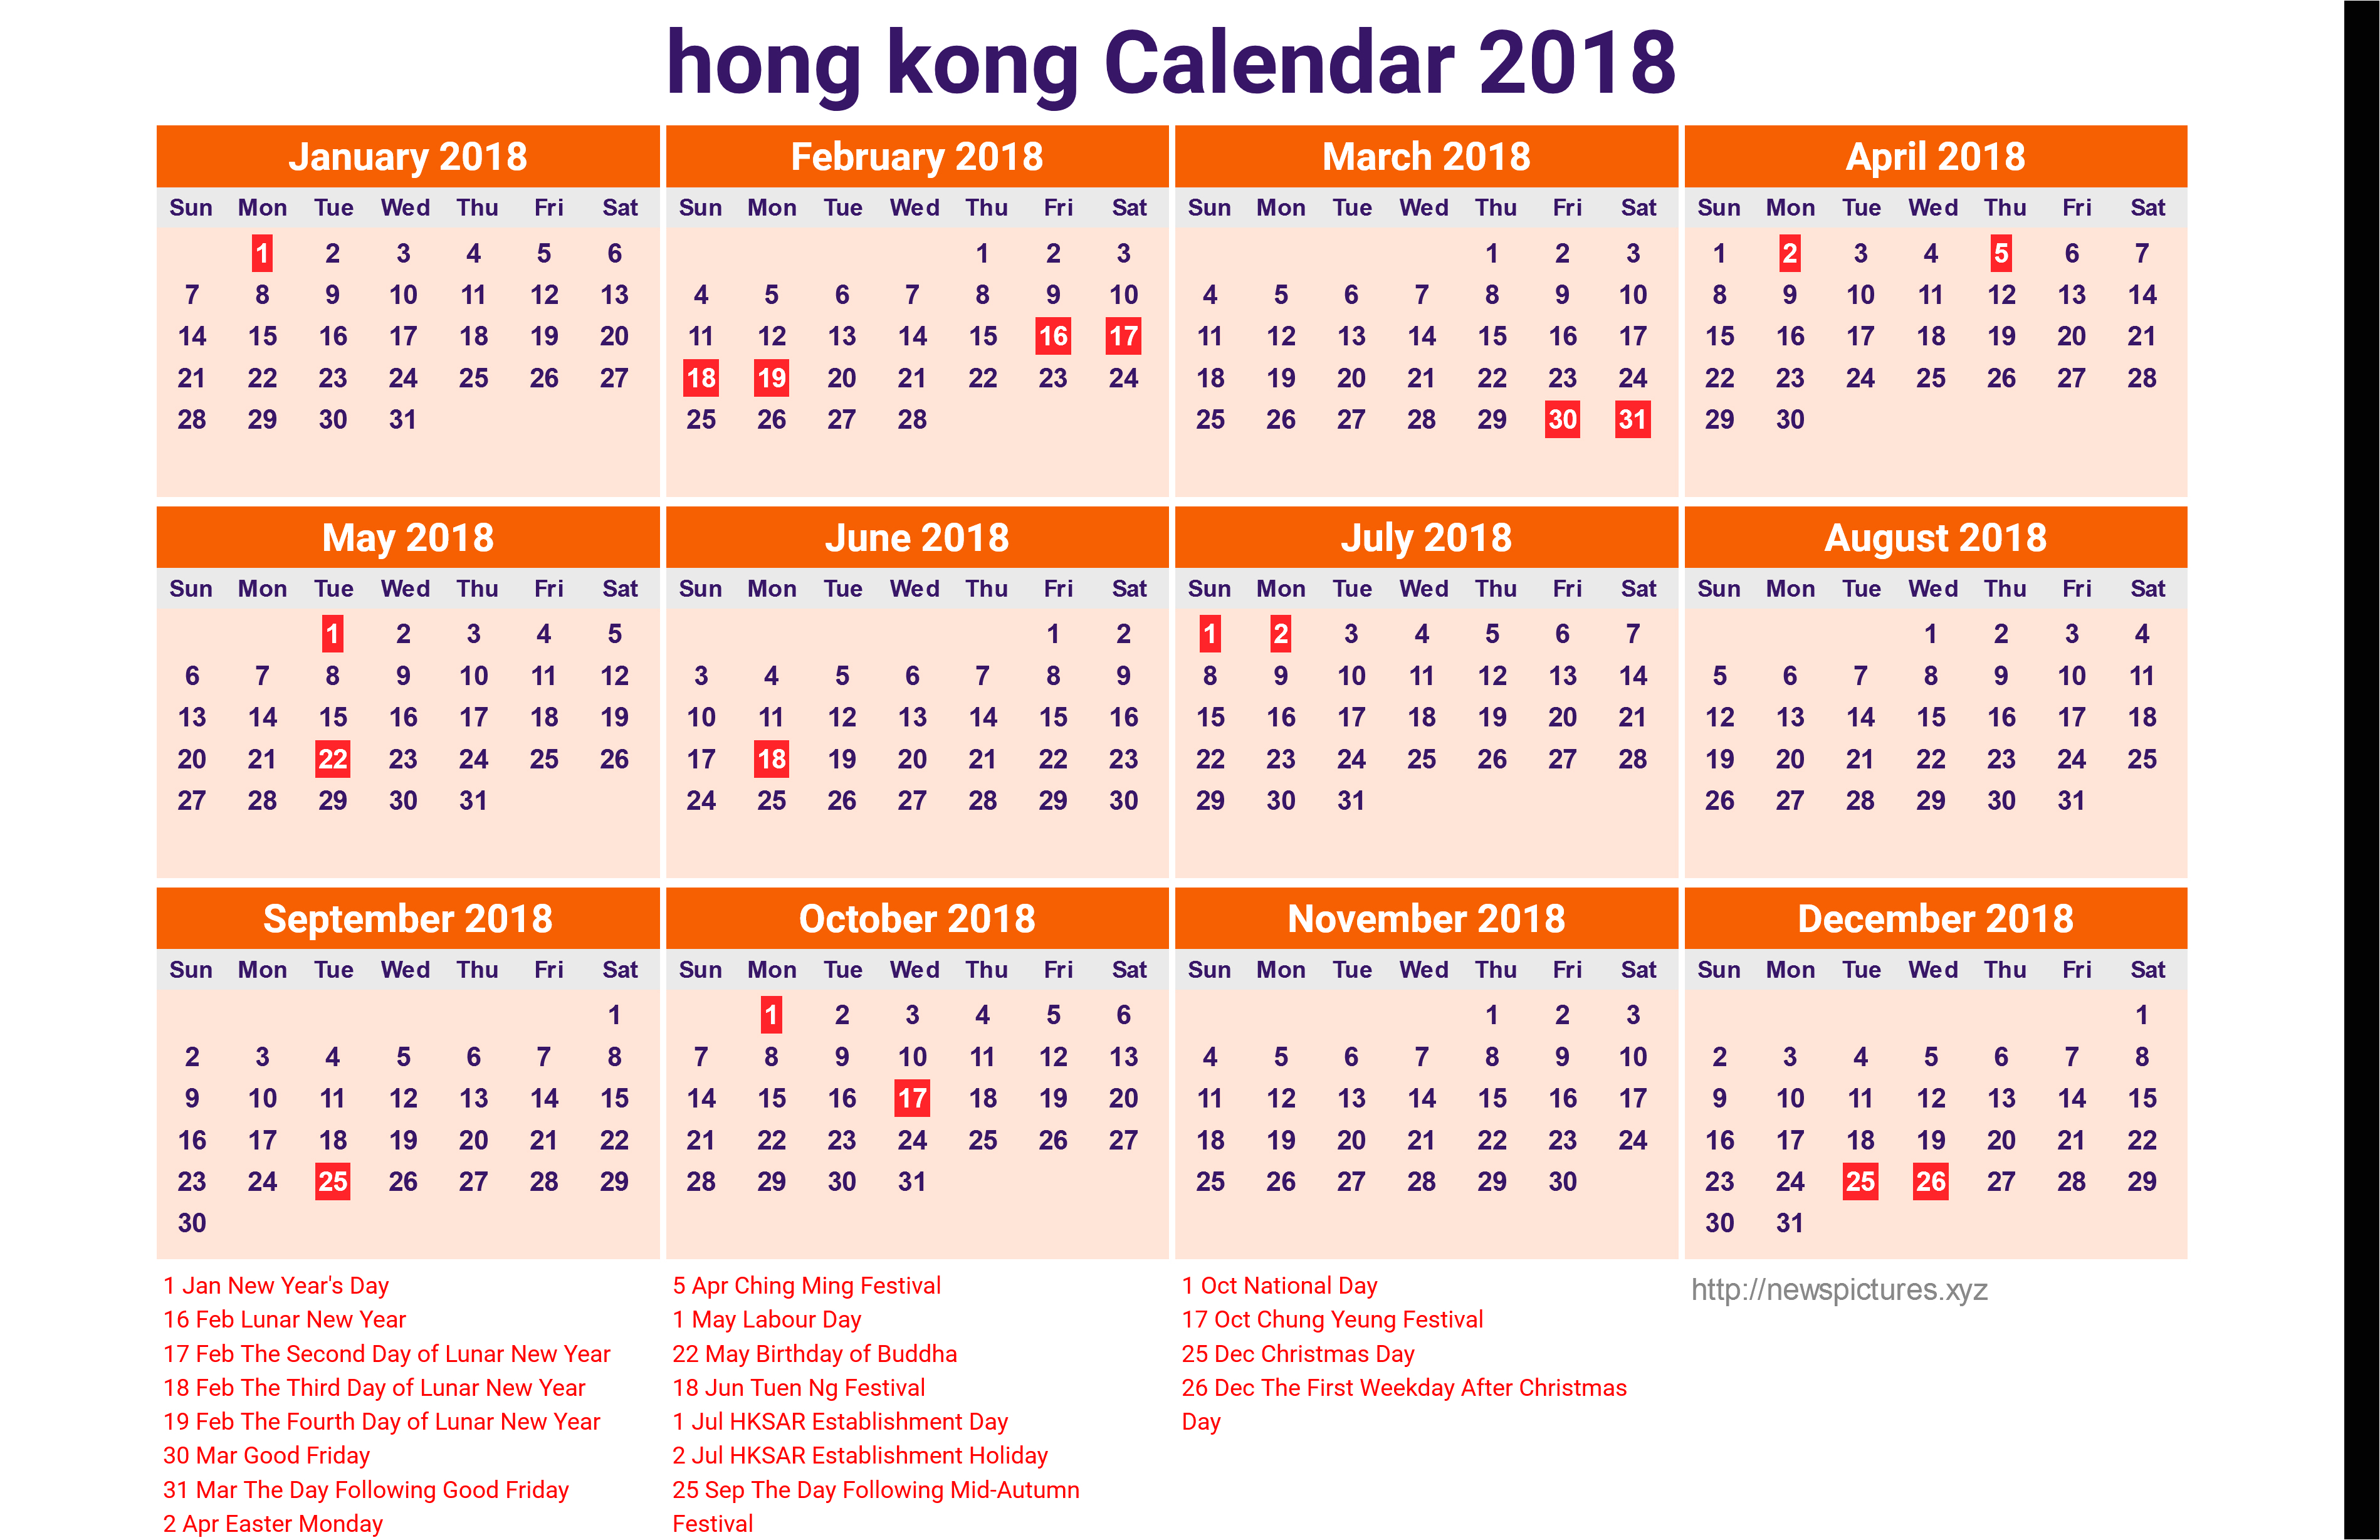 Print 45 Illustration 2019 Calendar Hong Kong